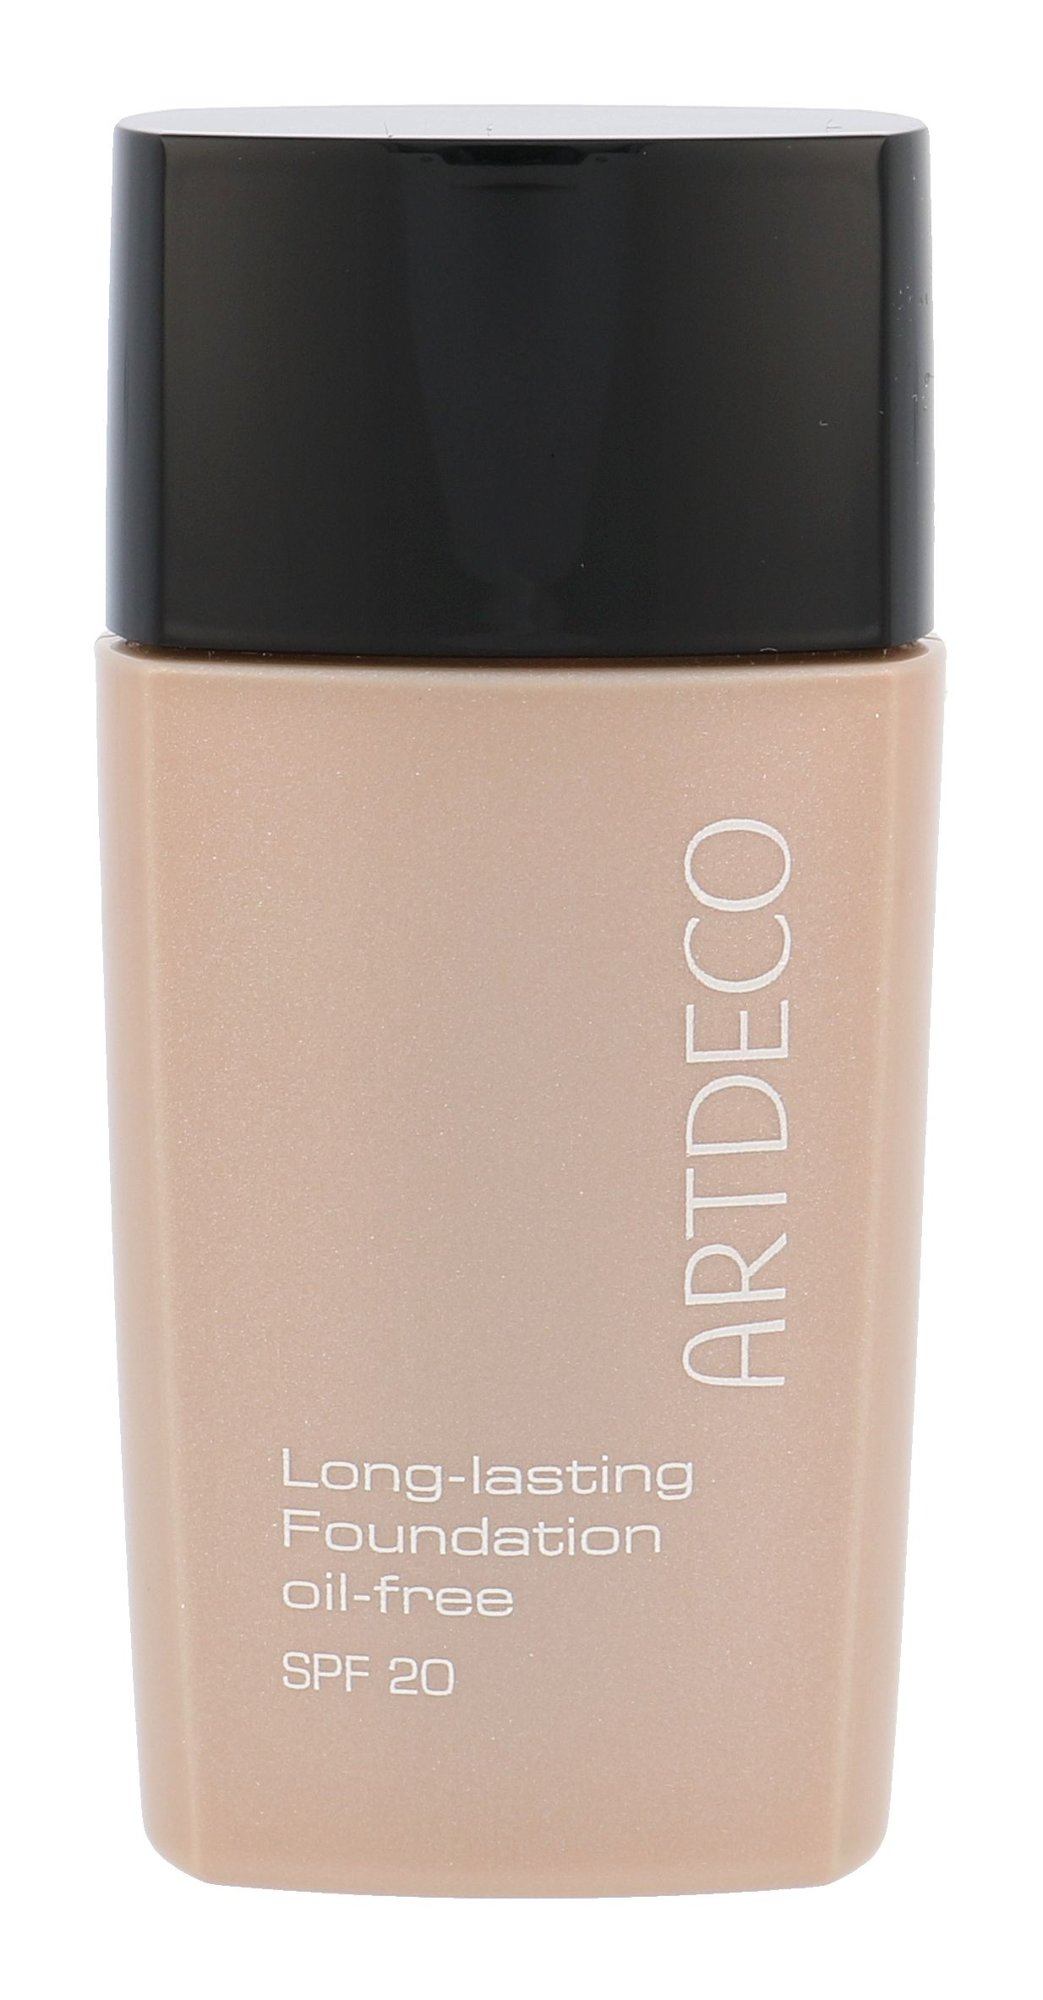 Artdeco Long Lasting Foundation Oil-Free Cosmetic 30ml 30 Natural Shell